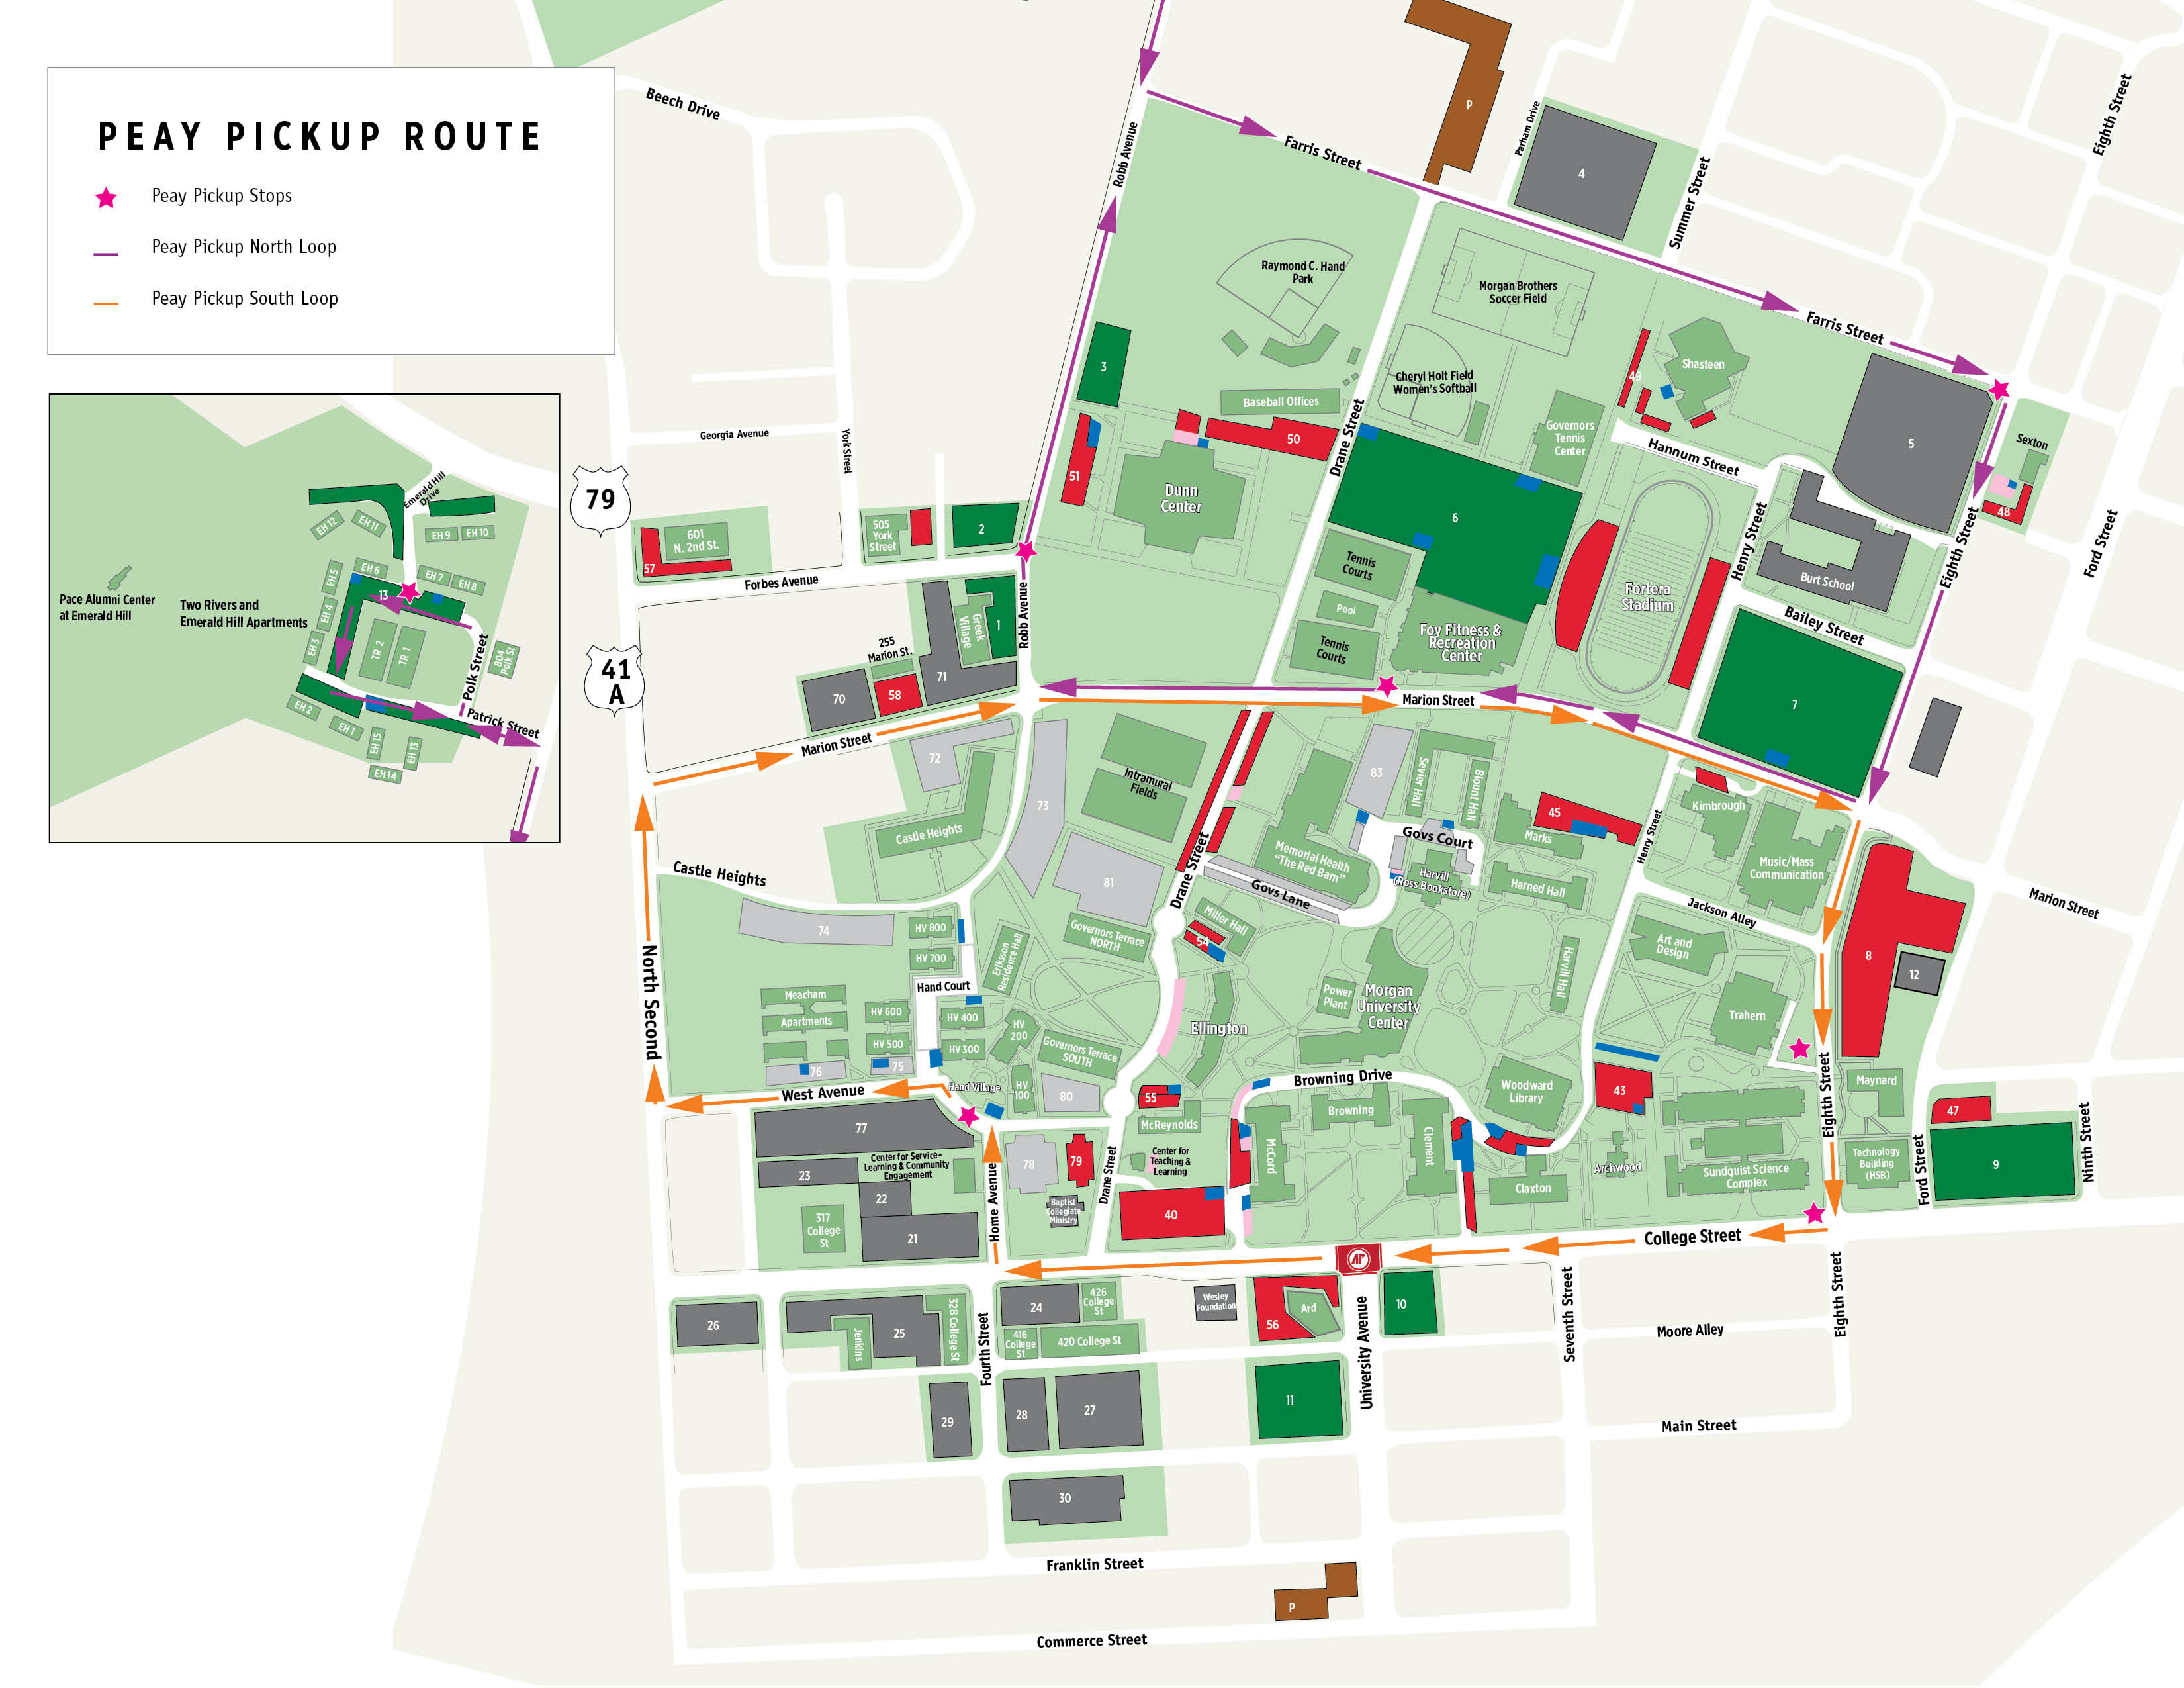 Parking York College Campus Map on cal state east bay campus map, grand valley state university campus map, york college logo, university of toronto campus map, york college campus safety, york college of pennsylvania campus, university of north alabama campus map, york university toronto map, mckendree university campus map, walden university campus map, stevens institute of technology campus map, private school campus map, long island university brooklyn campus map, southeastern oklahoma state university campus map, rochester institute of technology campus map, york college cuny, saginaw valley state university campus map, bronx cc campus map, university of scranton campus map, salem international university campus map,